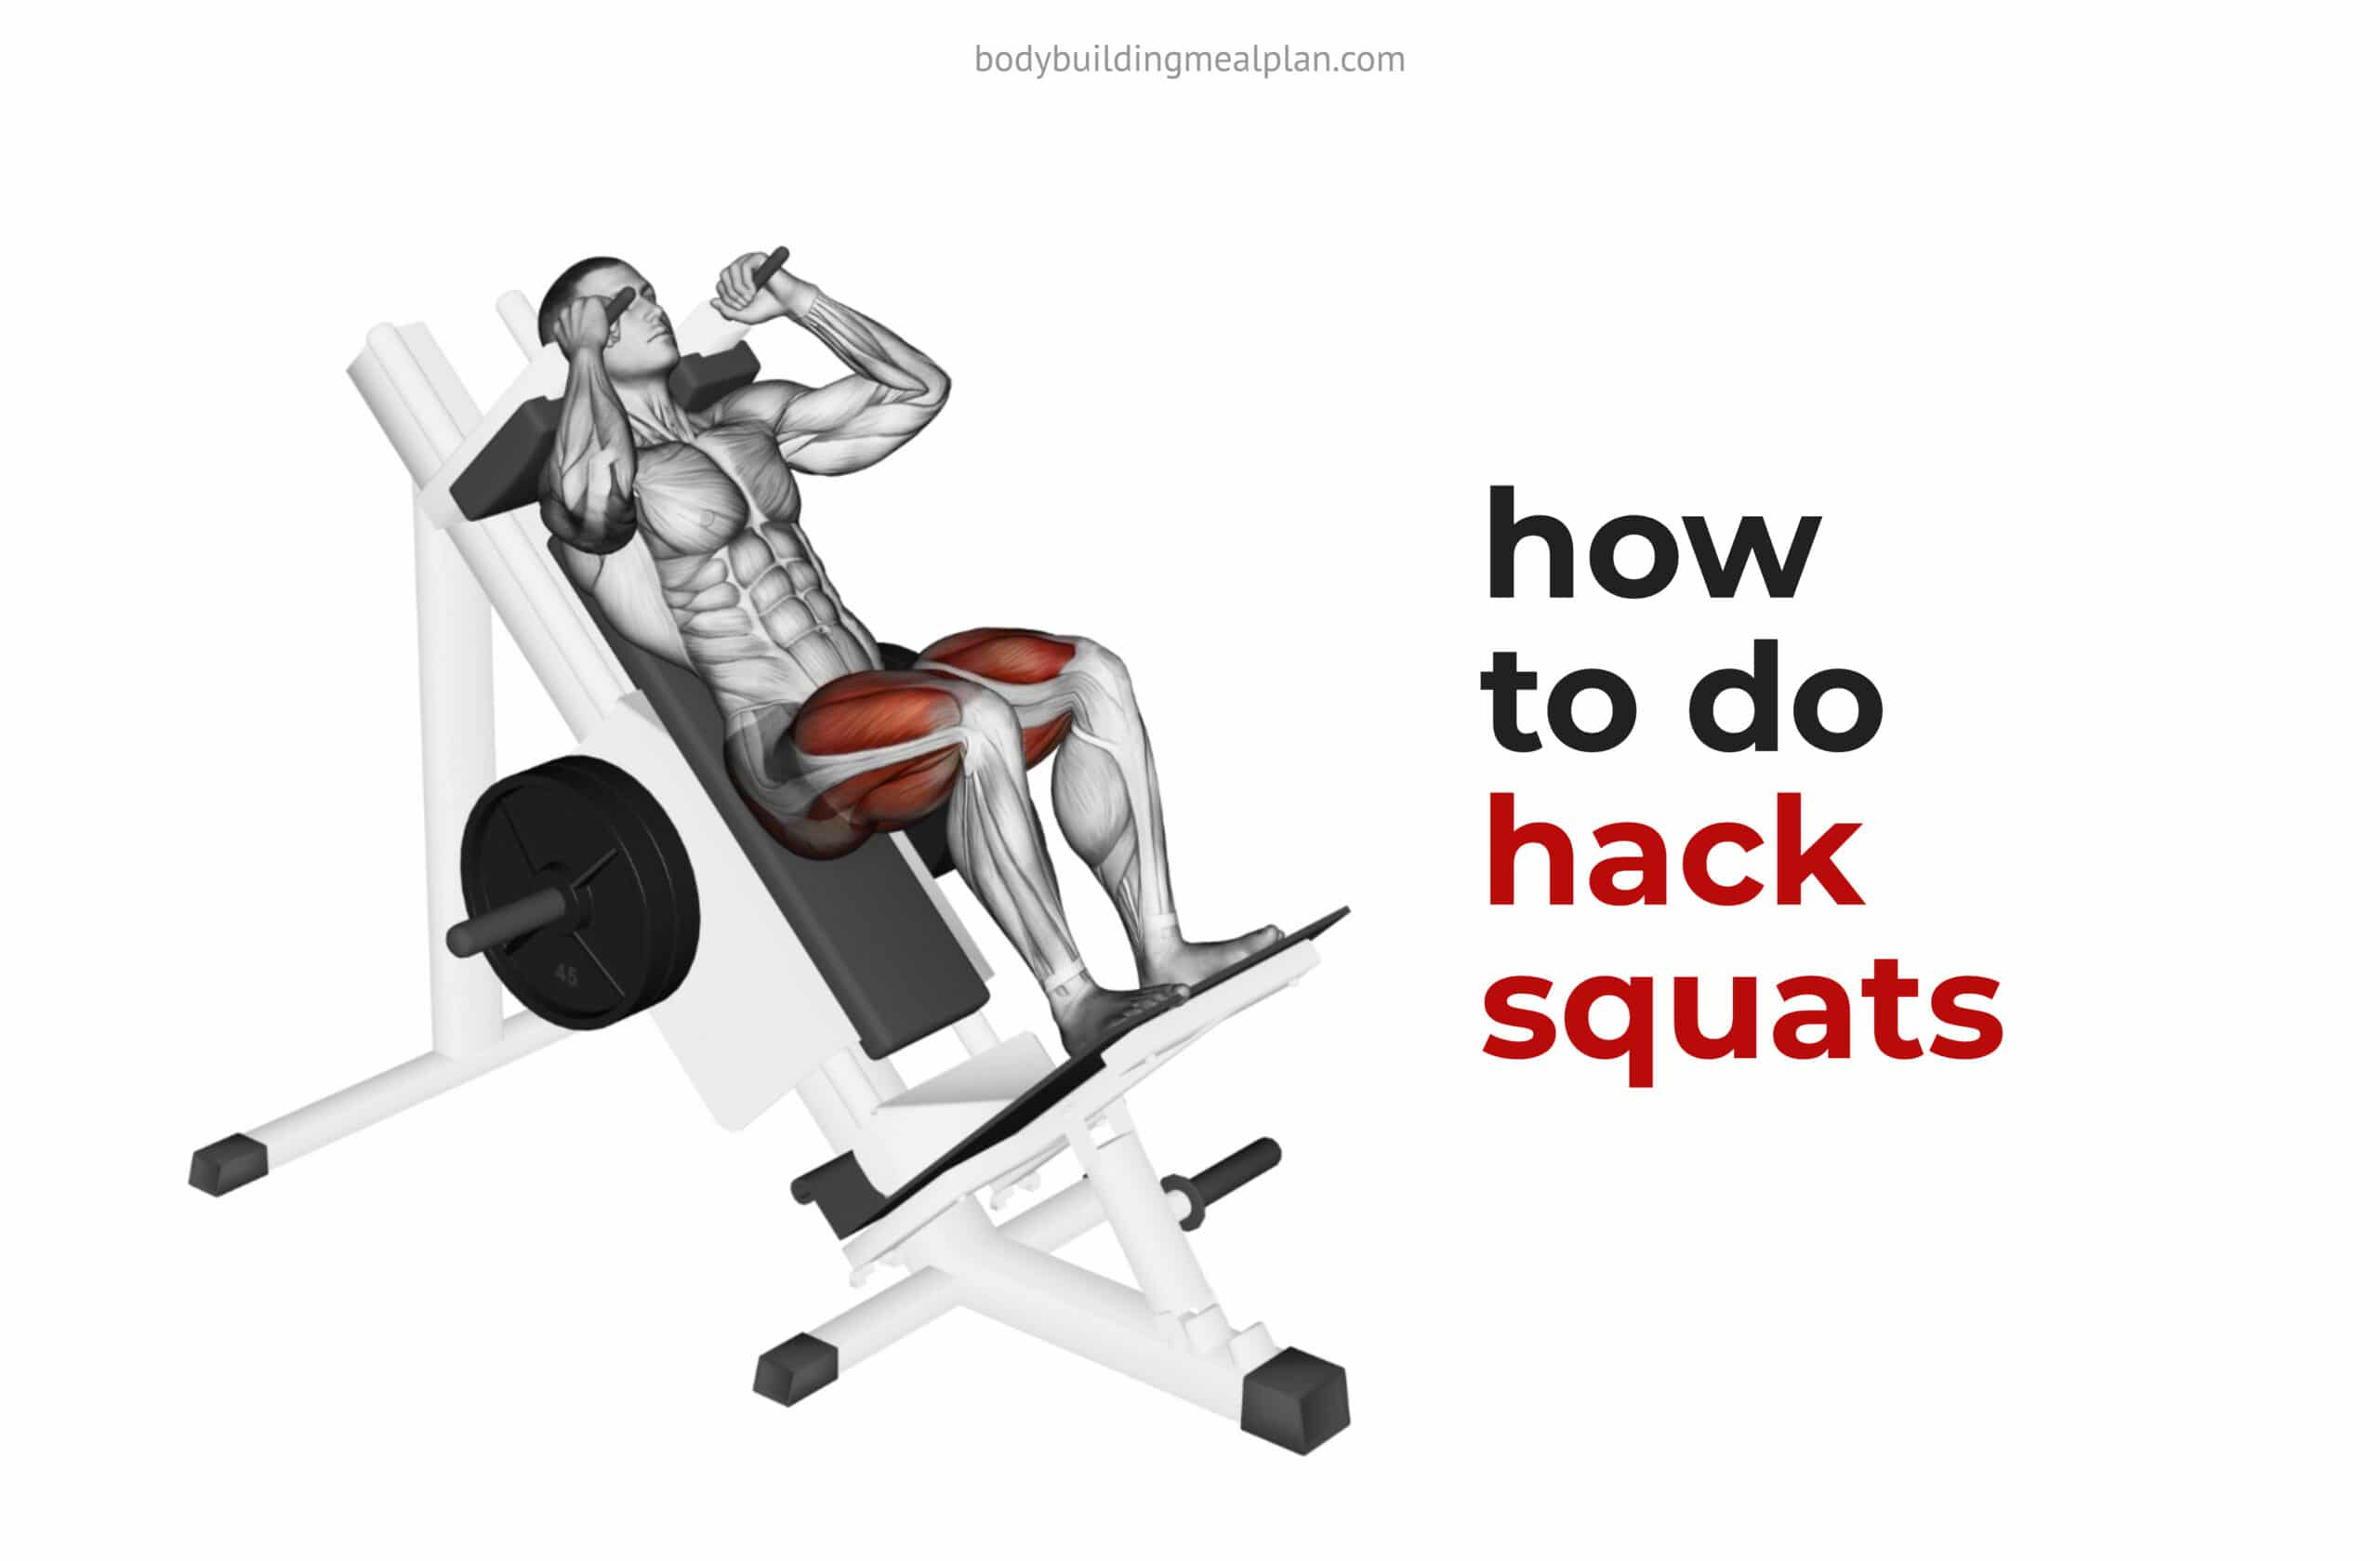 How To Do Hack Squats